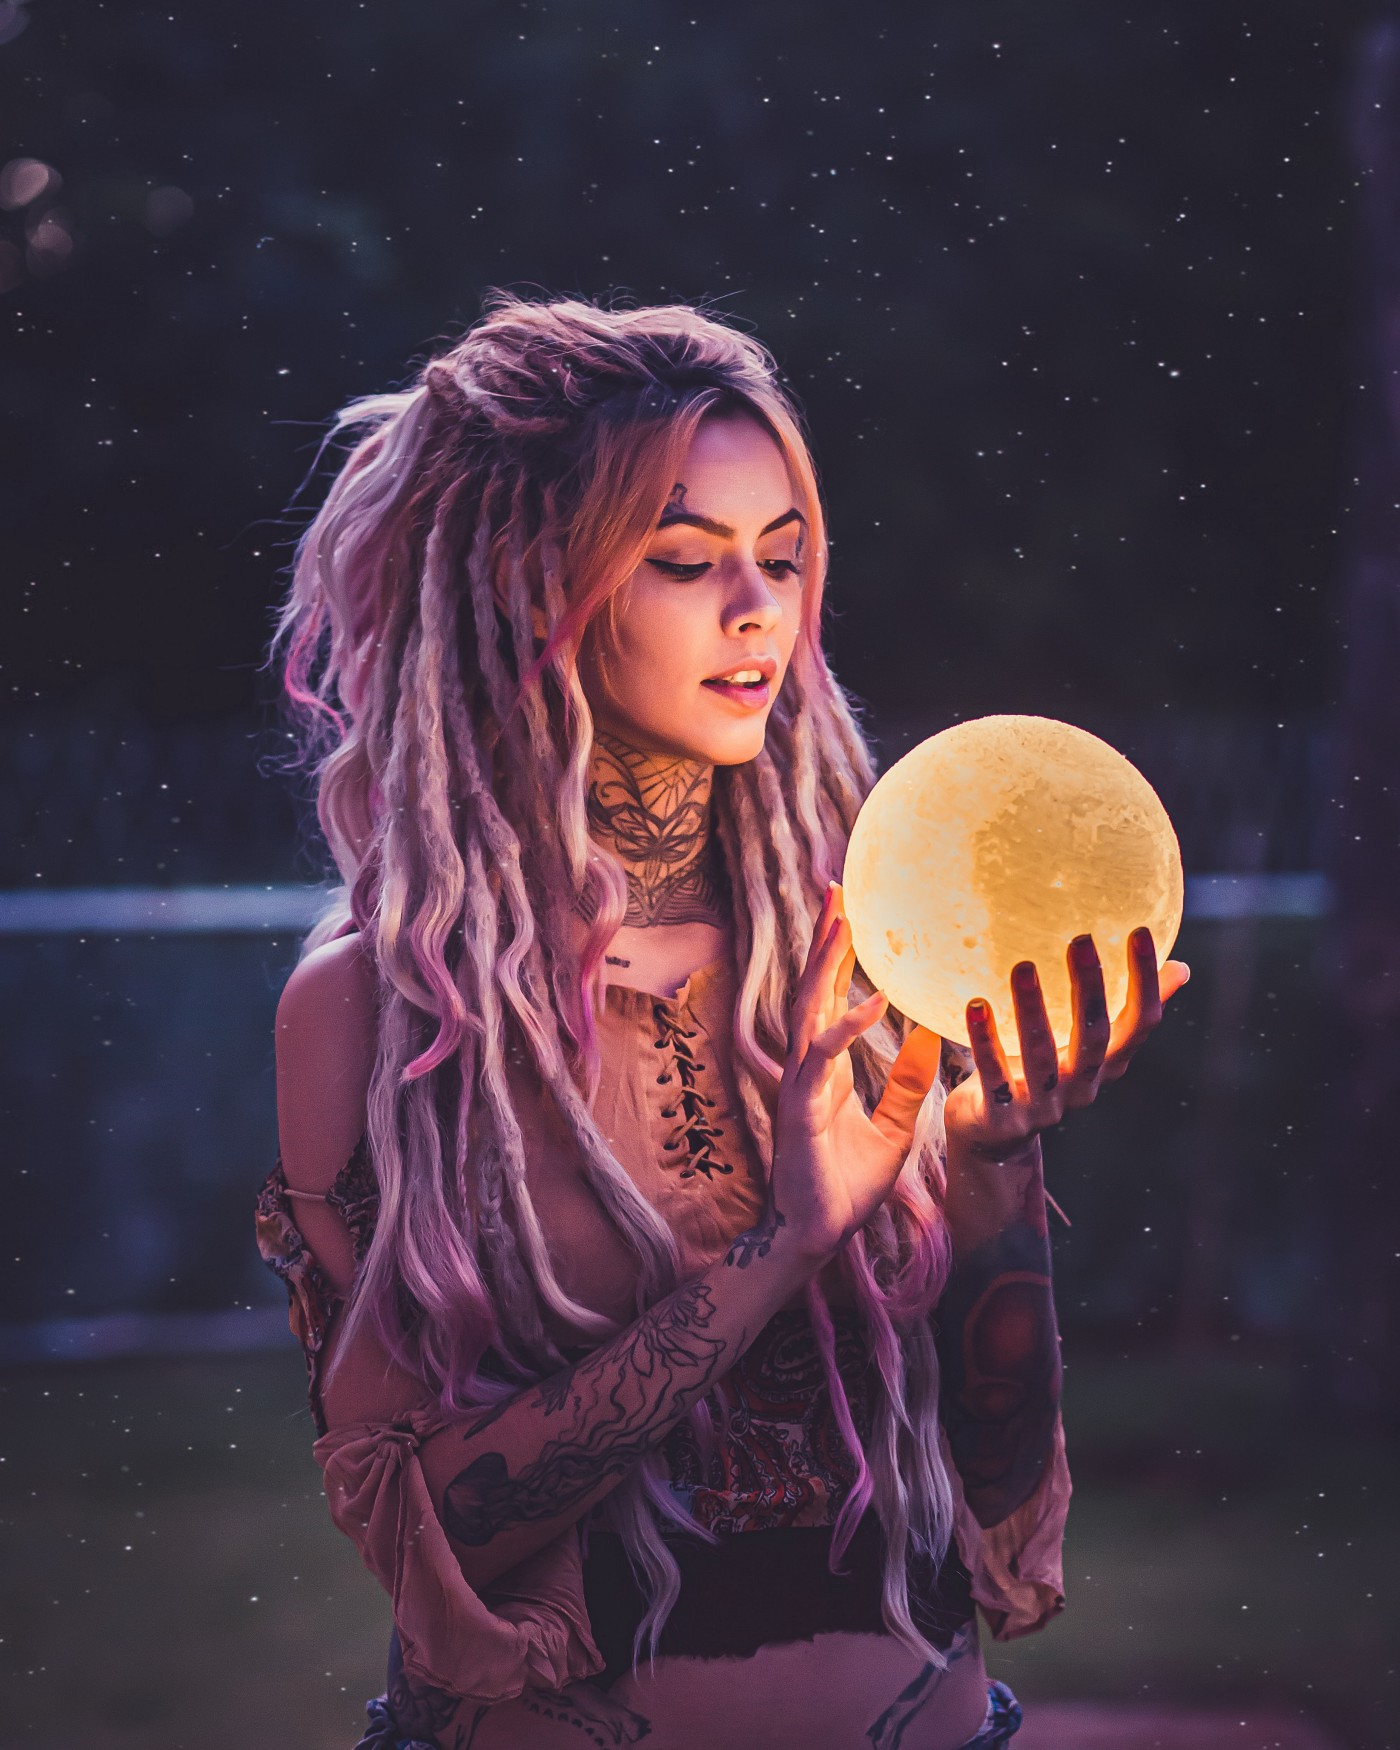 Woman holding full moon sphere emanating light, looking at it. It reflects light on her face. She has long dredlock hair and a design tattoo on her neck.